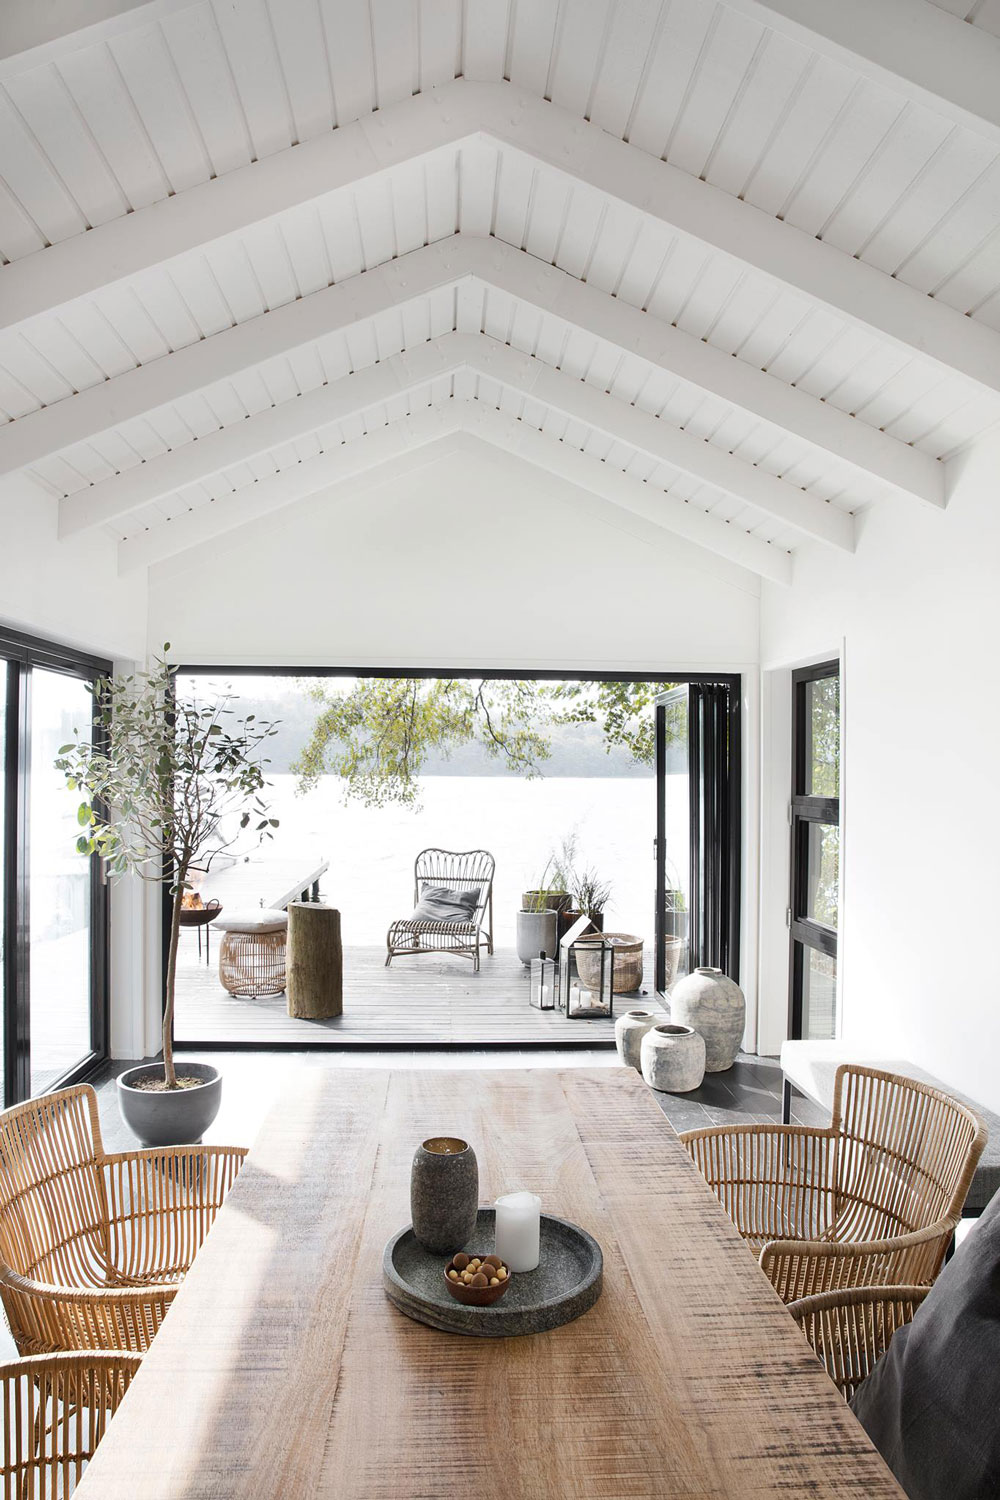 Let's Celebrate Summer with this Awe-Inspiring and Effortlessly Stylish Outdoor Space